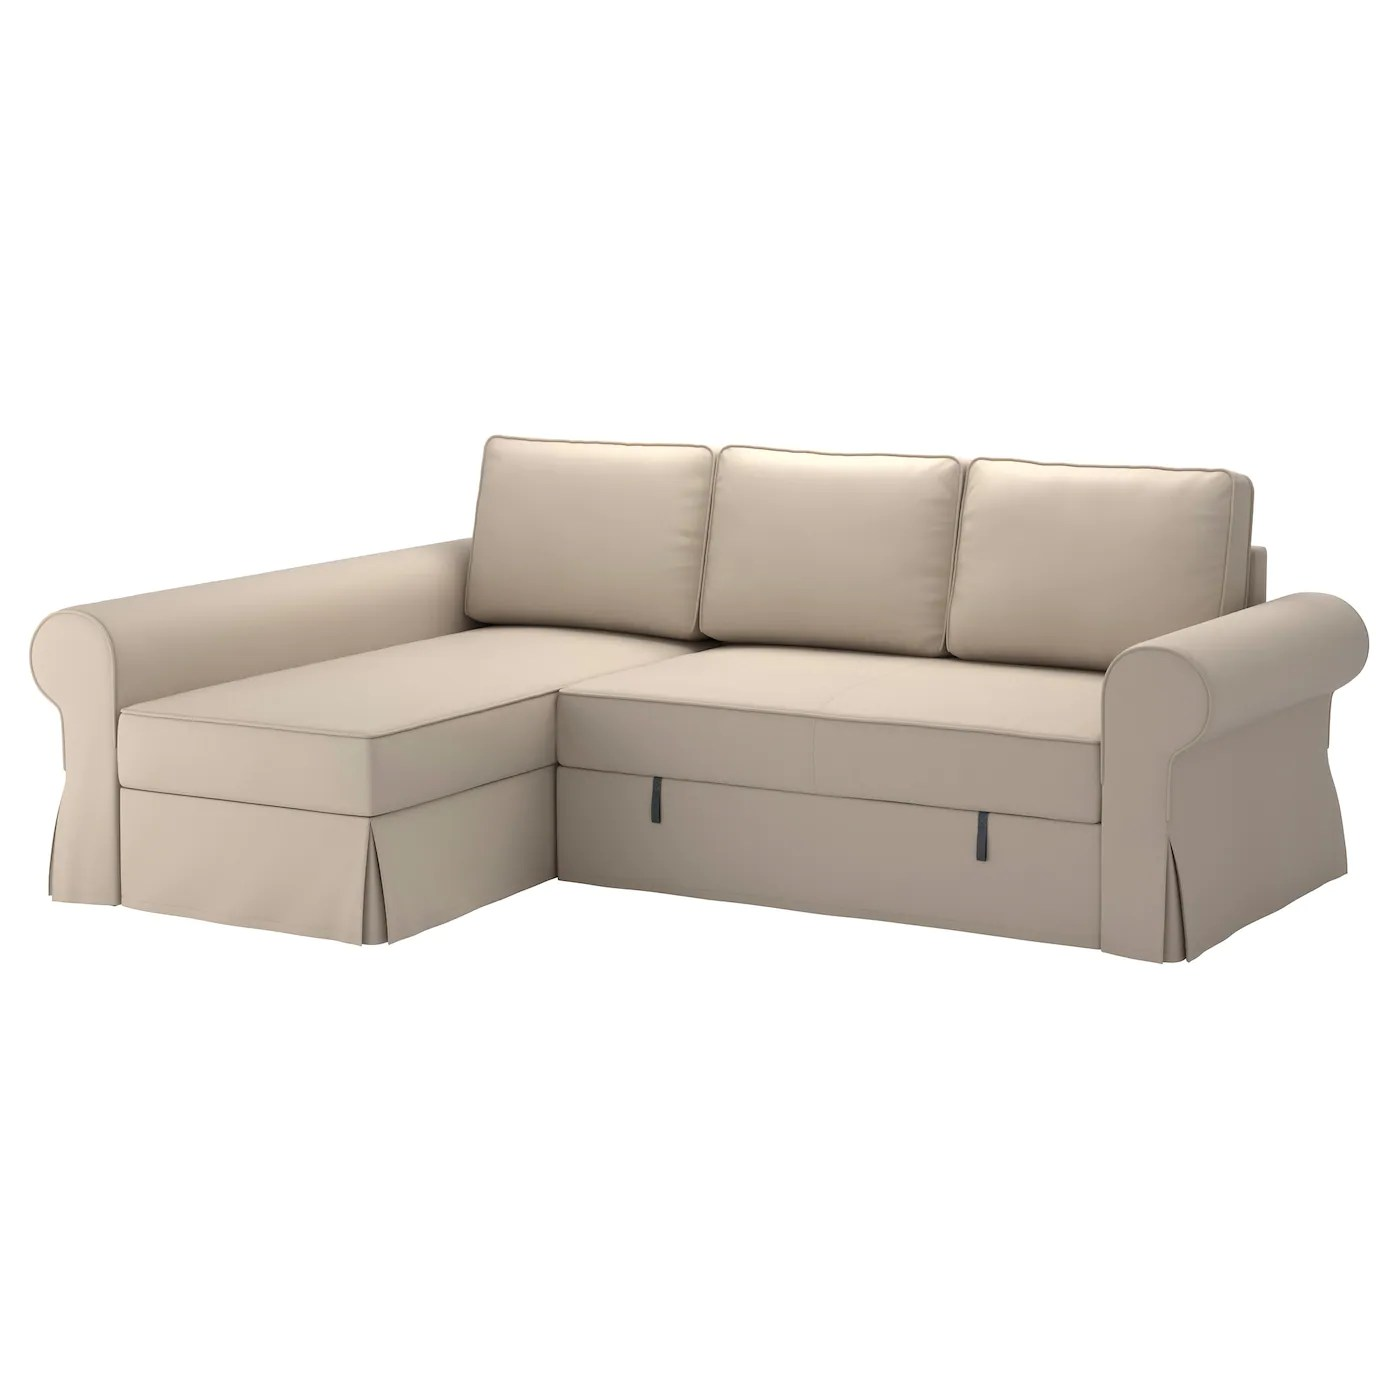 Ikea Sofa Wilj How To Open Ikea Sofa Bed Barn Sofa